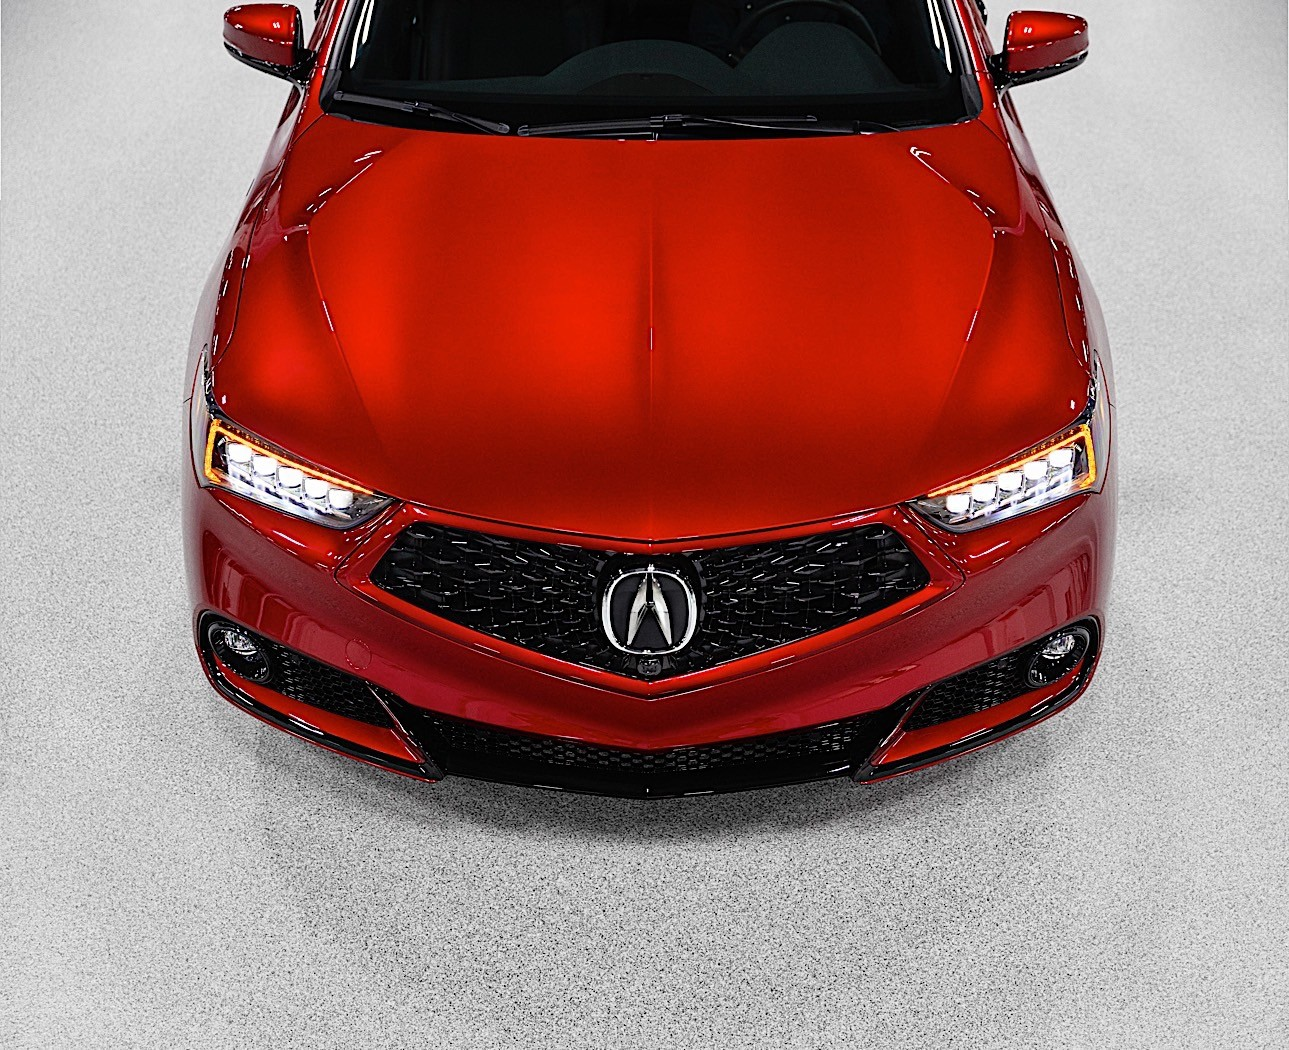 2020 Acura Tlx Pmc Edition Now On The Shelves Priced More Than